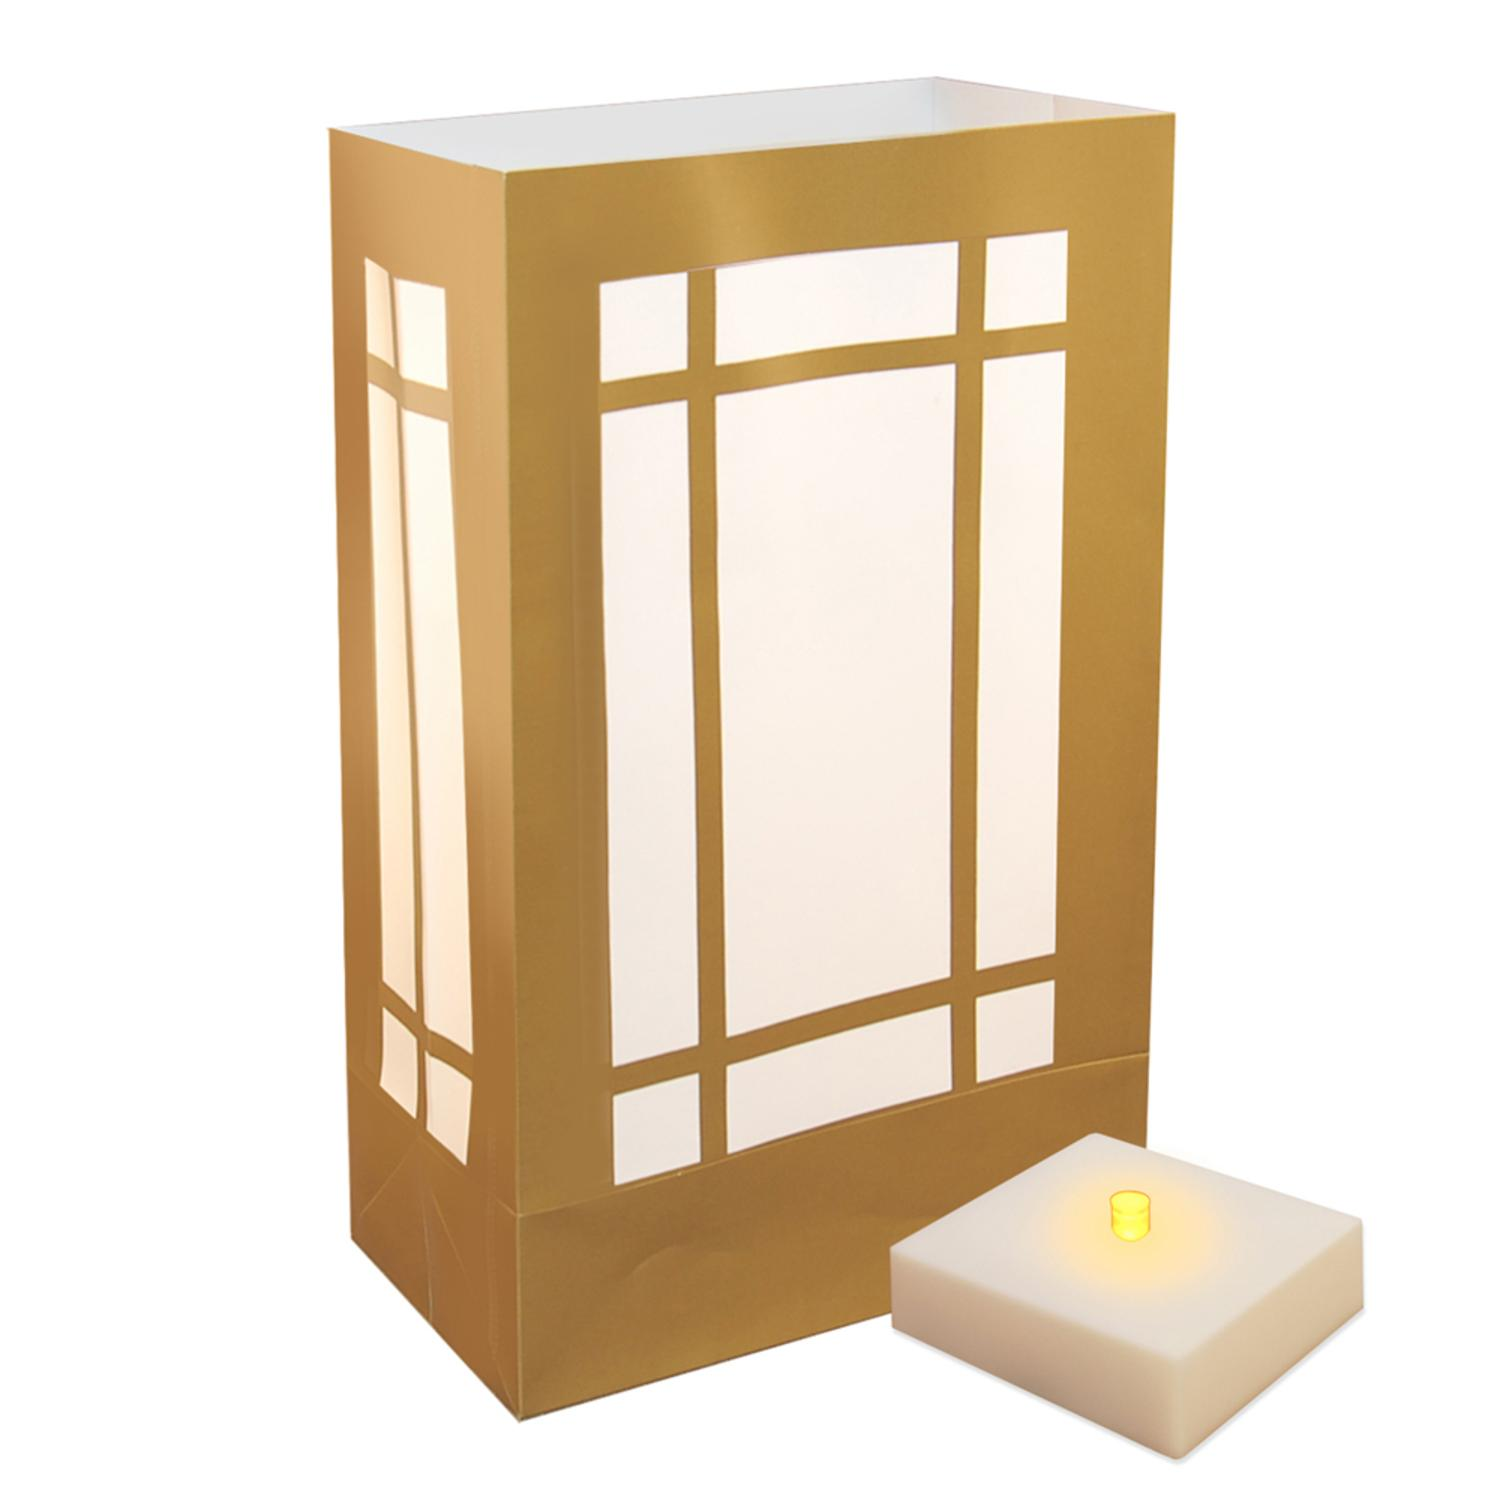 6 Weather Resistant Gold Lantern Luminaria Bags with Amber LED Flickering Lights